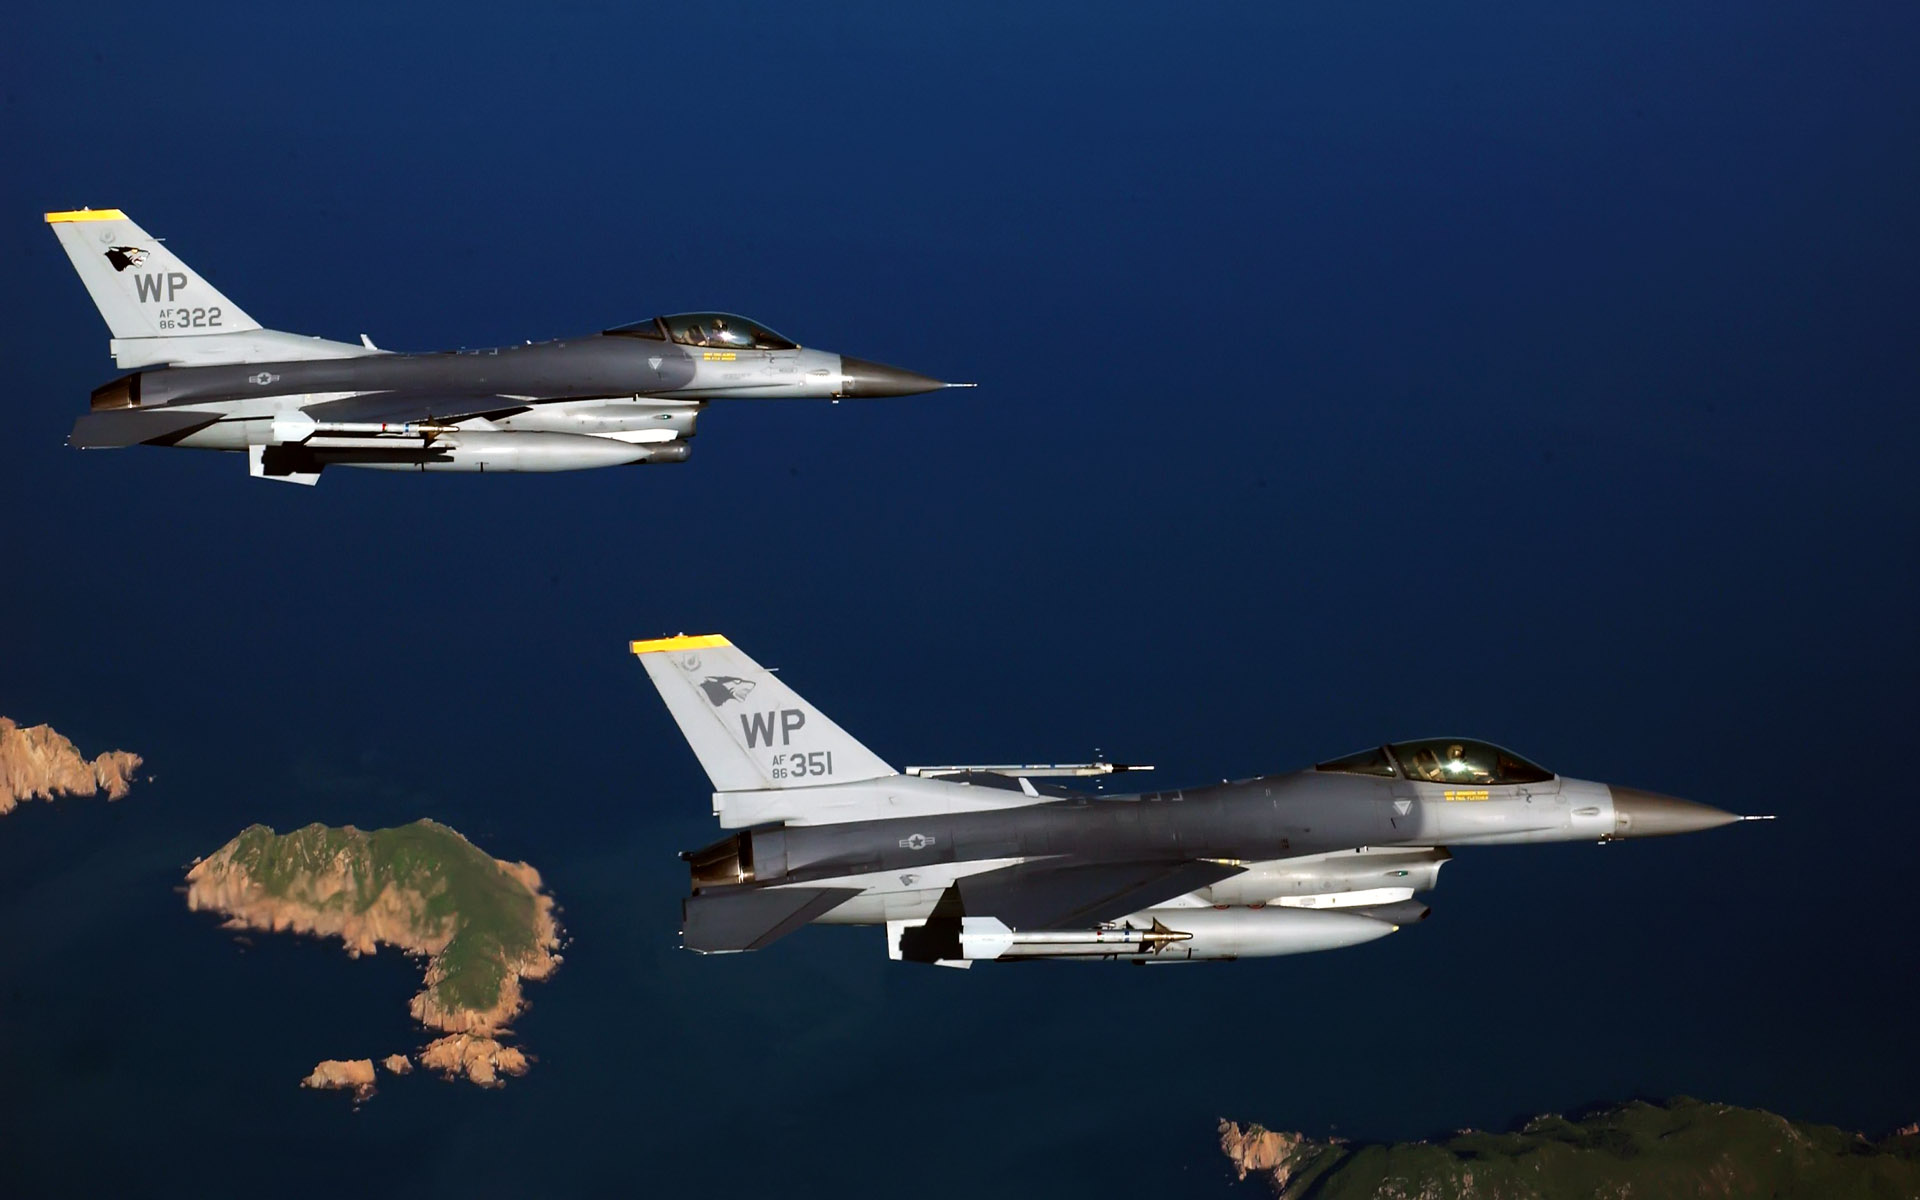 Two F 16 Fighting Falcon Aircrafts4658215595 - Two F 16 Fighting Falcon Aircrafts - Spacy, Fighting, Falcon, Aircrafts